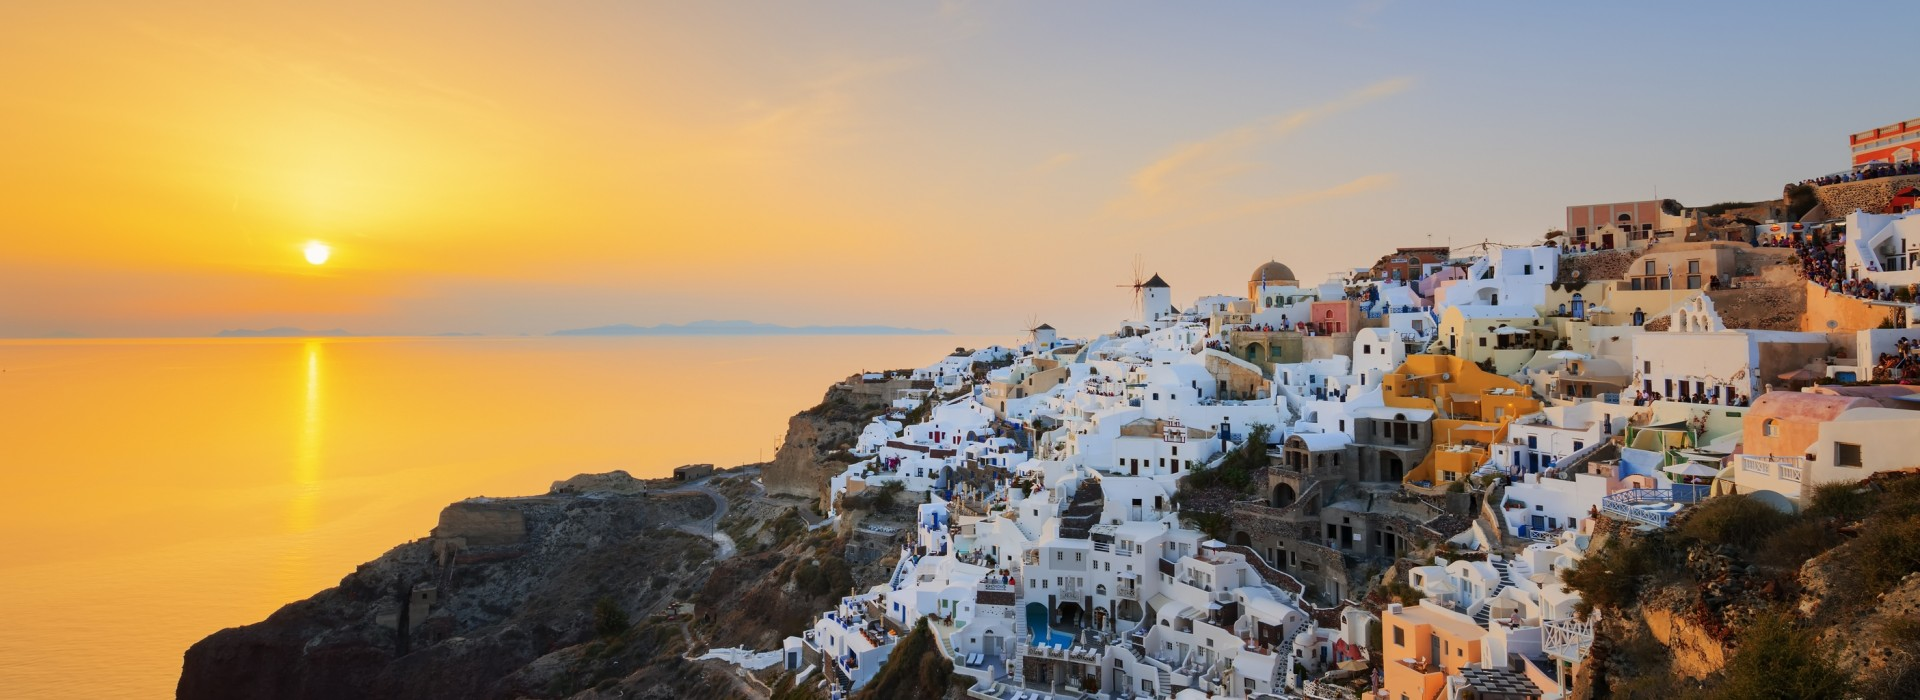 Panoramic view of Oia, the most famous of all villages of Santorini